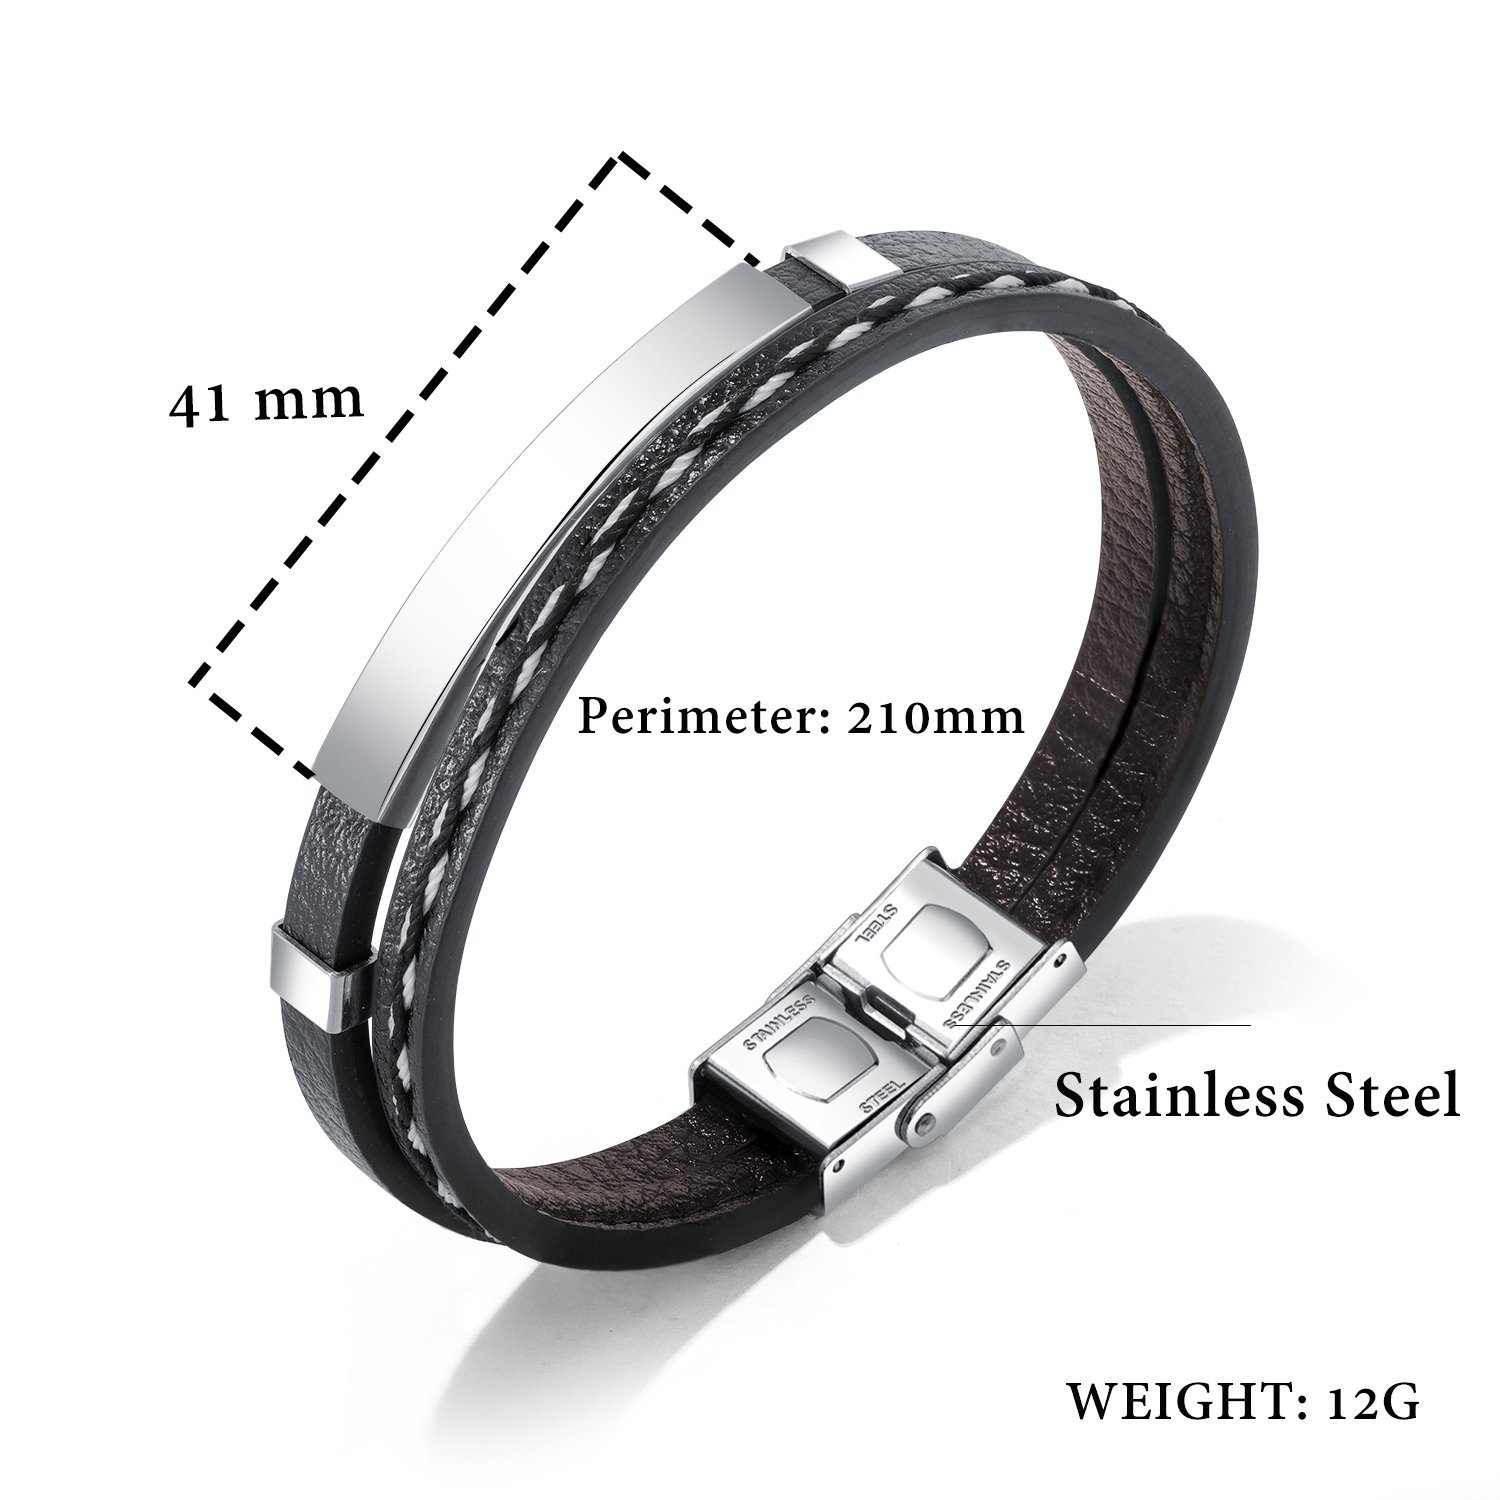 GAGAFEEL Leather Bracelet Braided Rope Cuff Custom Engraved Message Stainless Steel Bangle Unisex Gift (Engraving-Steel) by GAGAFEEL (Image #3)